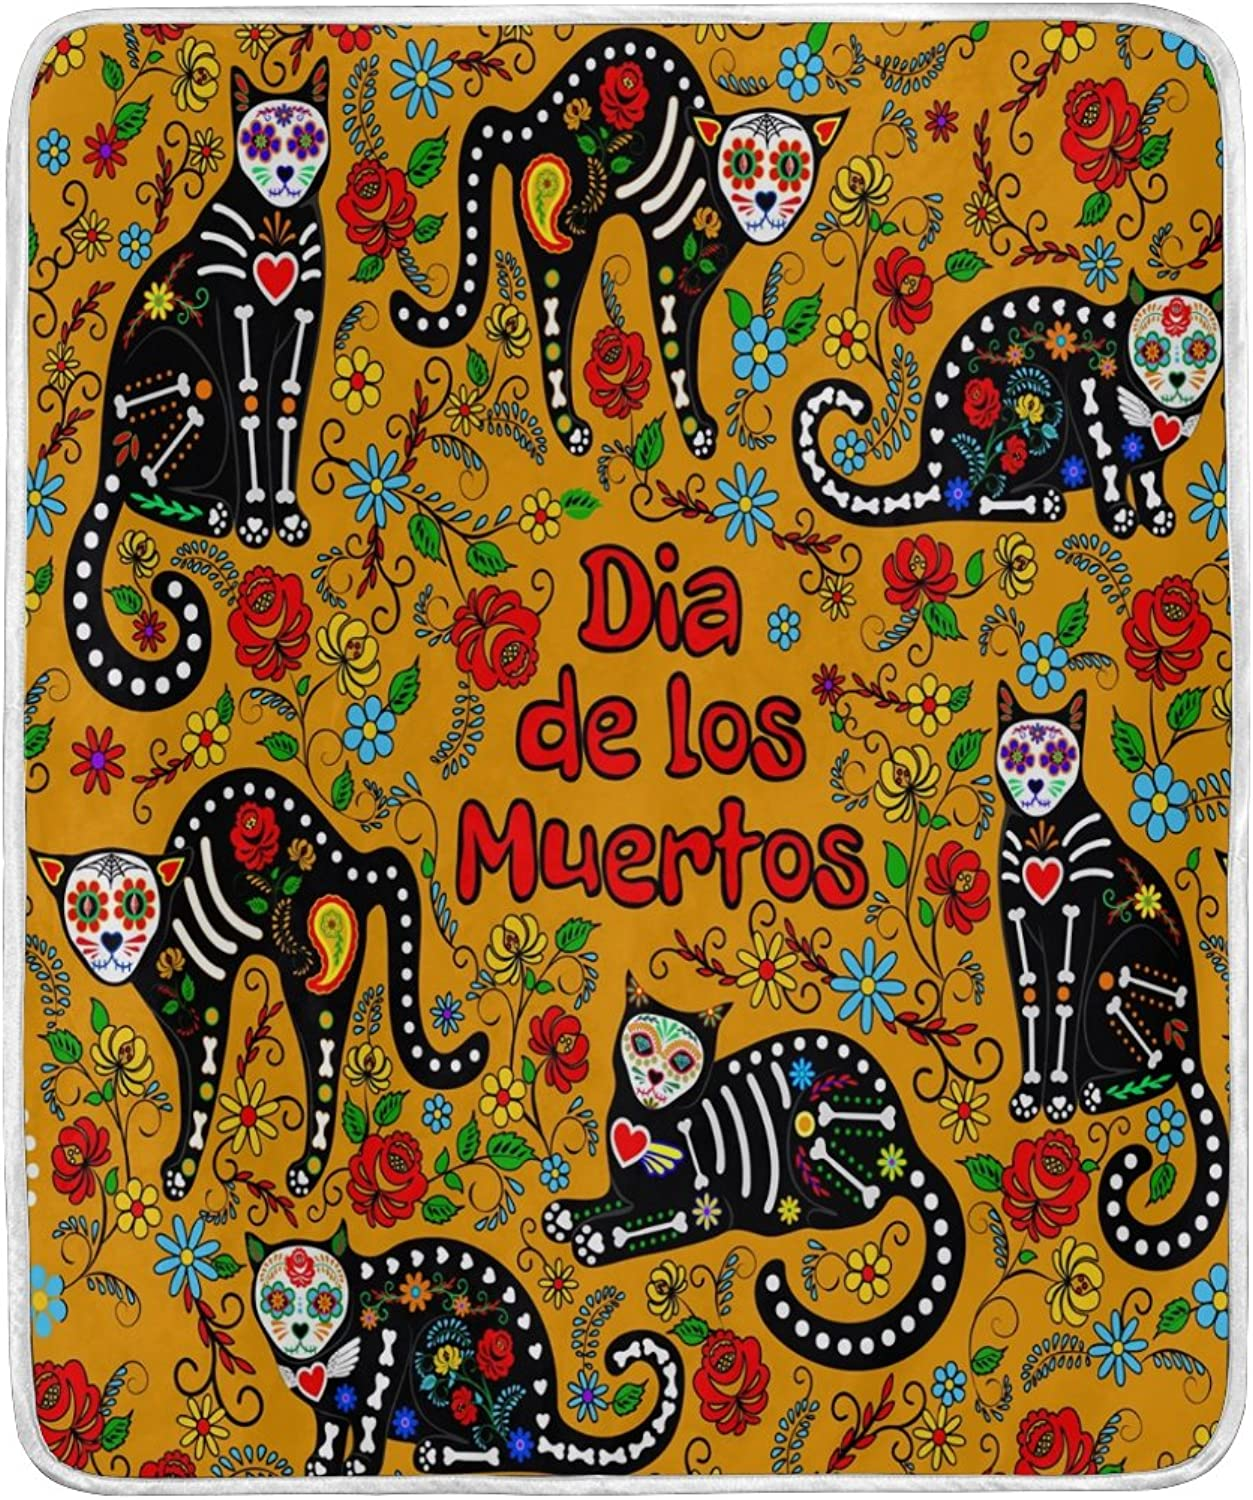 ALAZA Home Decor Dia De Los Muertos Skull Cat Floral Blanket Soft Warm Blankets for Bed Couch Sofa Lightweight Travelling Camping 60 x 50 inch Throw Size for Kids Boys Women